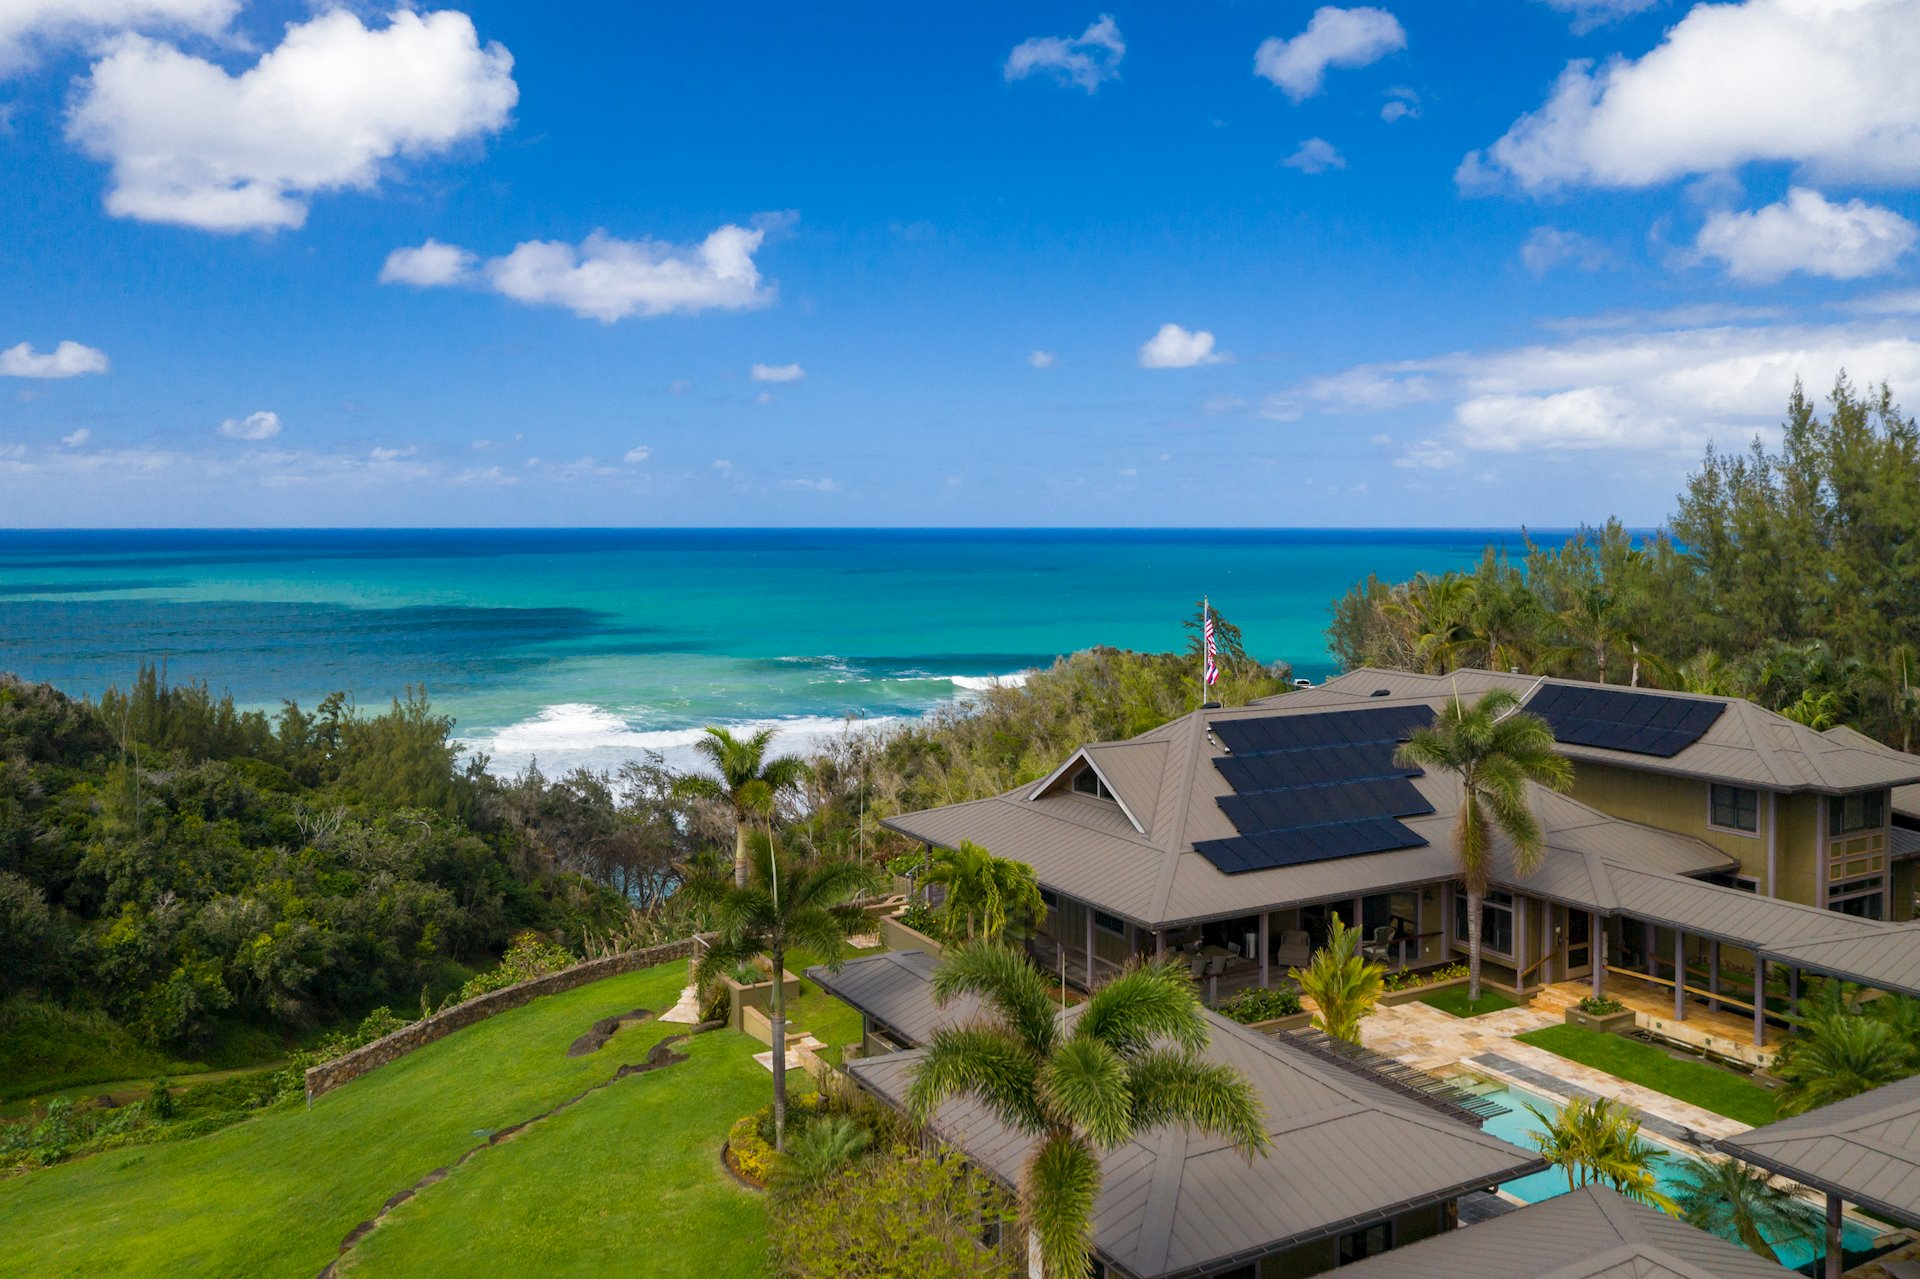 Nestled on an ocean bluff along Kauai's spectacular North Shore, Hale Ihilani boasts captivating views of the deep blue Pacific, lush tropical valley and rugged mountains and coast.  The impressive 5+ acre gated estate offers seclusion with an ideal vantage point to enjoy the island's dramatic views plus beach access! <br><br>With over 7,700 sqft of living, the estate was strategically designed to create the ultimate, luxury retreat. The spacious main living area opens to an extensive oceanfront lanai perfect for entertaining or seasonal whale watching. <br><br>A true Chef's kitchen is equipped with top-of-line appliances and features: Thermador refrigerator, Sub-Zero double freezer and refrigerator drawers, Gaggenau steam and convection ovens, warming drawer, espresso/coffee maker, custom island with Cherry wood butcher-block counter top, two Shaw Fireclay oversized farmhouse sinks with Industrial Faucets, granite counters and custom wood panels and Schaub Hardware.<br><br>Four impressive master suites offer spa-quality baths and views, two of which are positioned down breezeways as private 'pods,' each with its own kitchenette and/or wet bar.  A separate guest house features a folding glass wall and Bali-style bath.<br><br>Pristine living areas transition seamlessly to a stunning salt-water pool, fed by a Po'oka lava stone waterfall. The estate's Koi pond and unique Weeping Grotto offer additional tranquility.<br><br>Other features include: over-sized barn with finished loft, photo-voltaic solar, high-velocity A/C, fitness center, vaulted ceilings, walls of windows, a remarkable winding staircase, private elevator, Ribbon Mahogany furniture-grade cabinetry and more.  <br><br>Hale Ihilani truly is a one-of-a-kind, tropical retreat complete with all the modern, luxury essentials and astonishing views. It simply does not get any better than this.